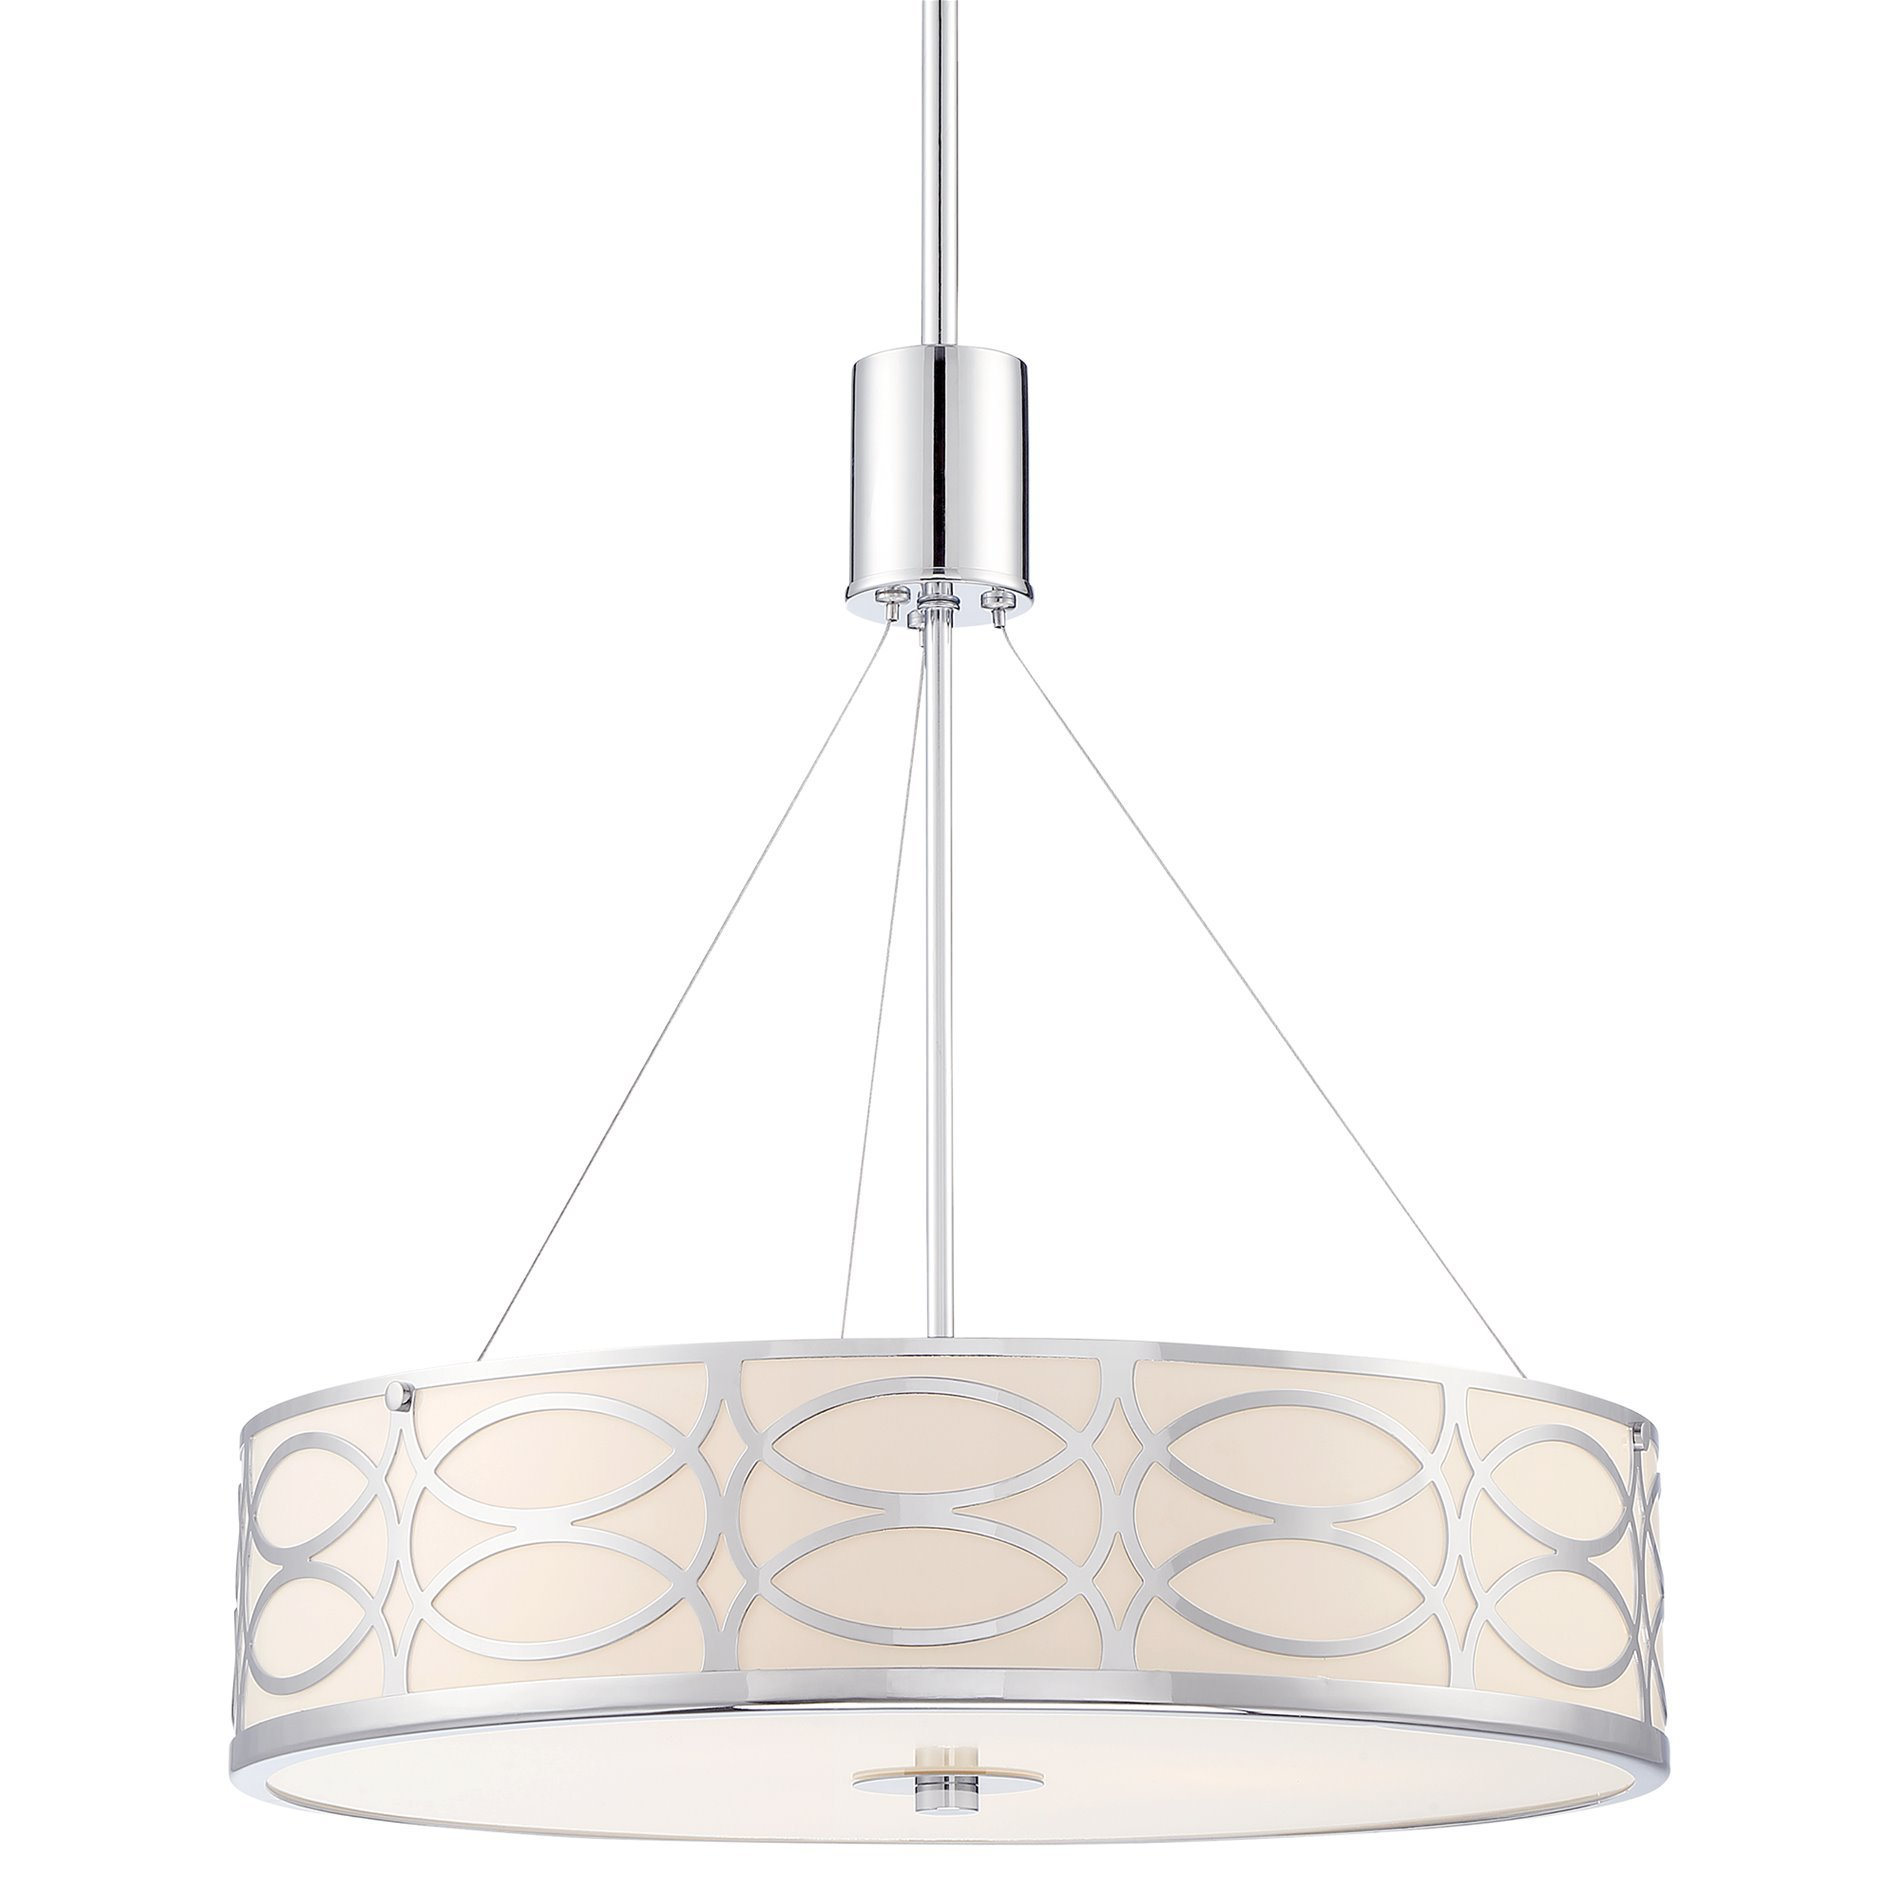 "Revel Sienna 18"" 3 Light Metal Drum Chandelier Glass Diffuser"